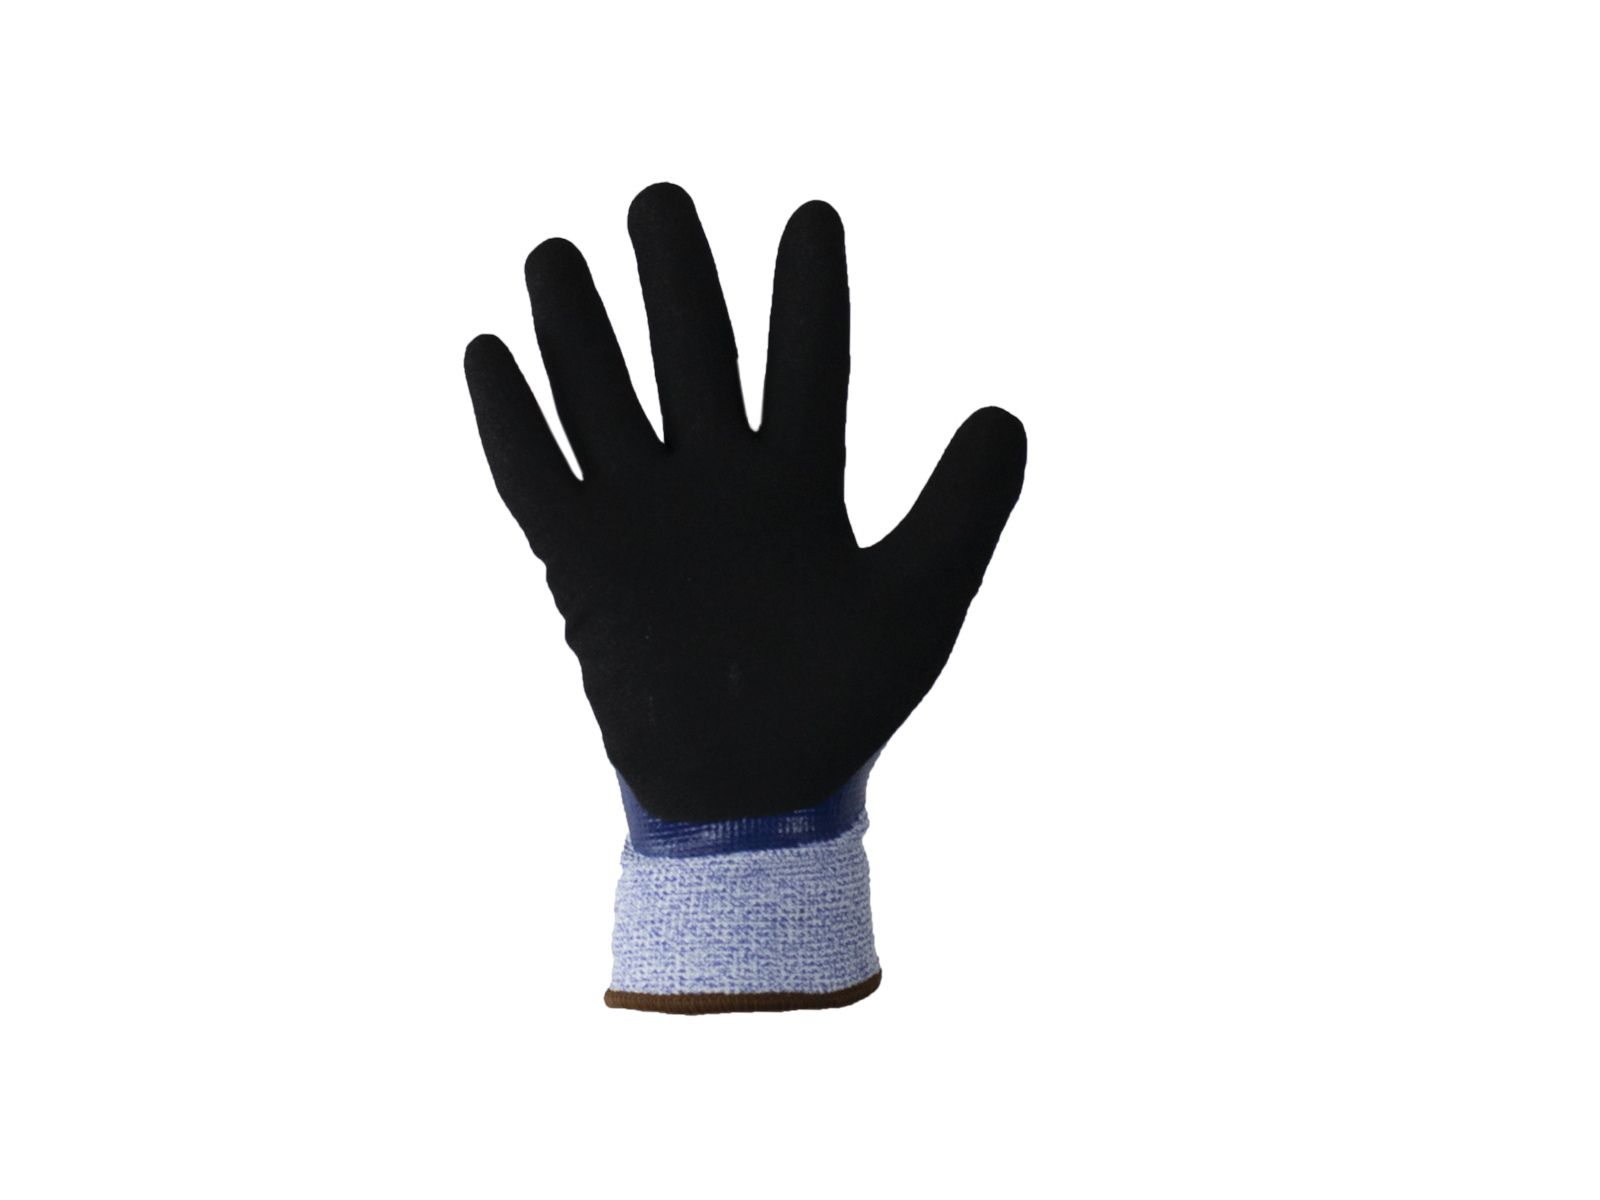 Samurai Thermo Wet Cut 5 Safety glove w/ Fleece Liner - Multipack